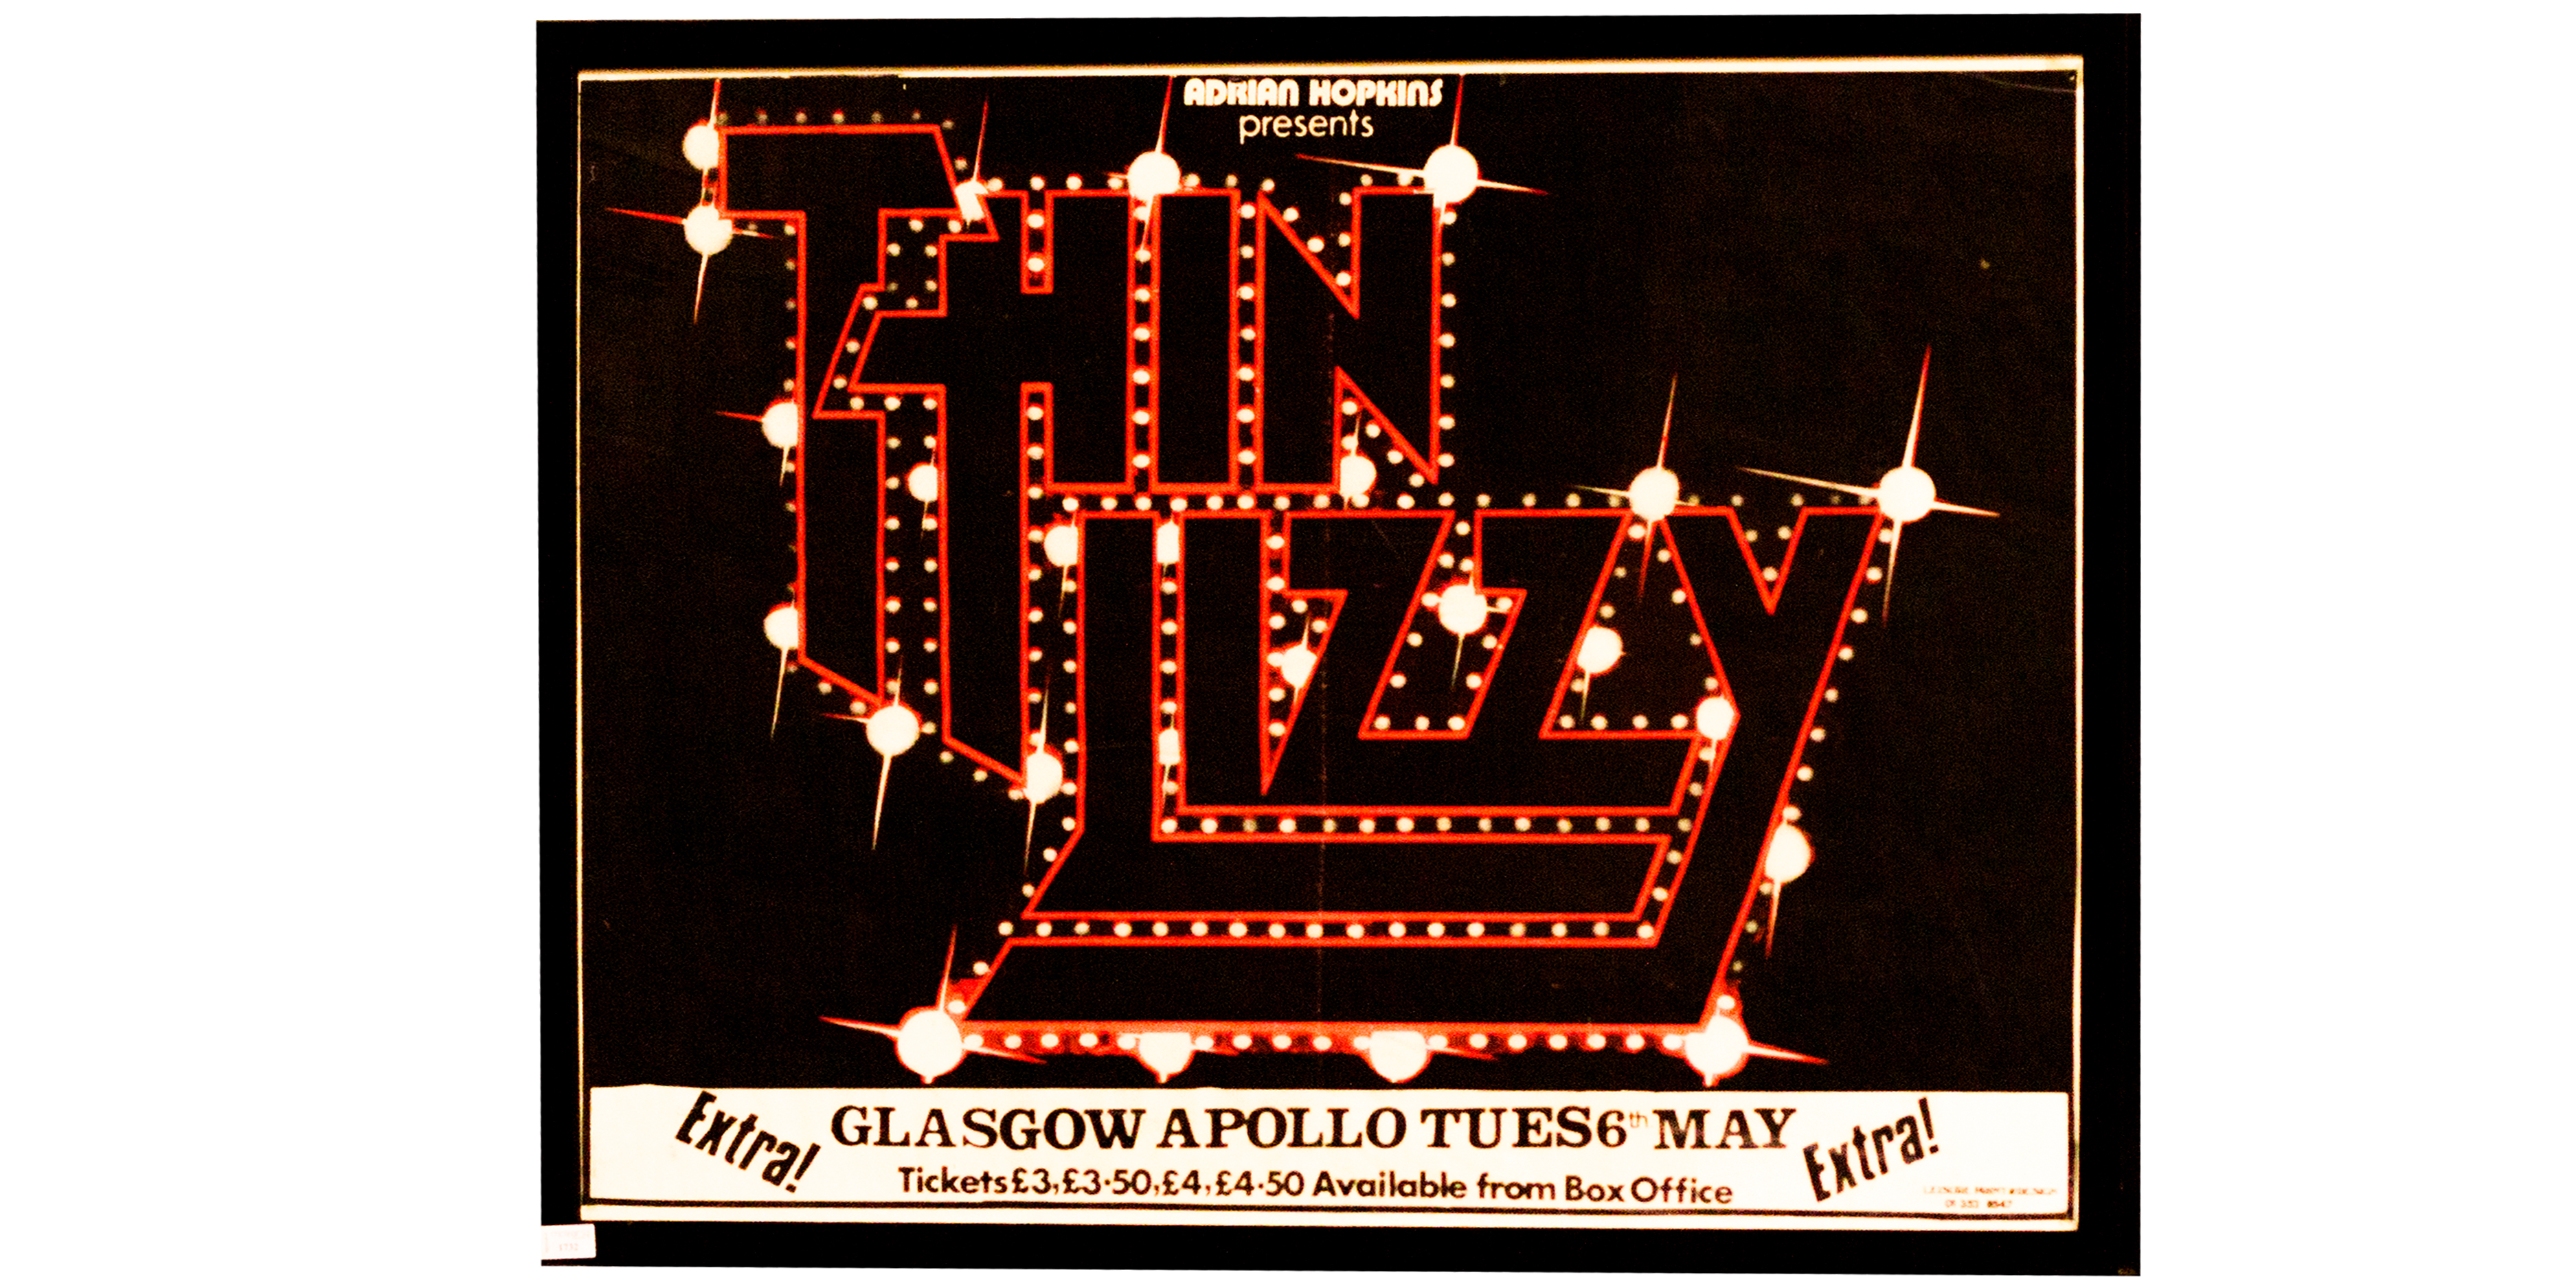 Image of 1980 Think Lizzy poster